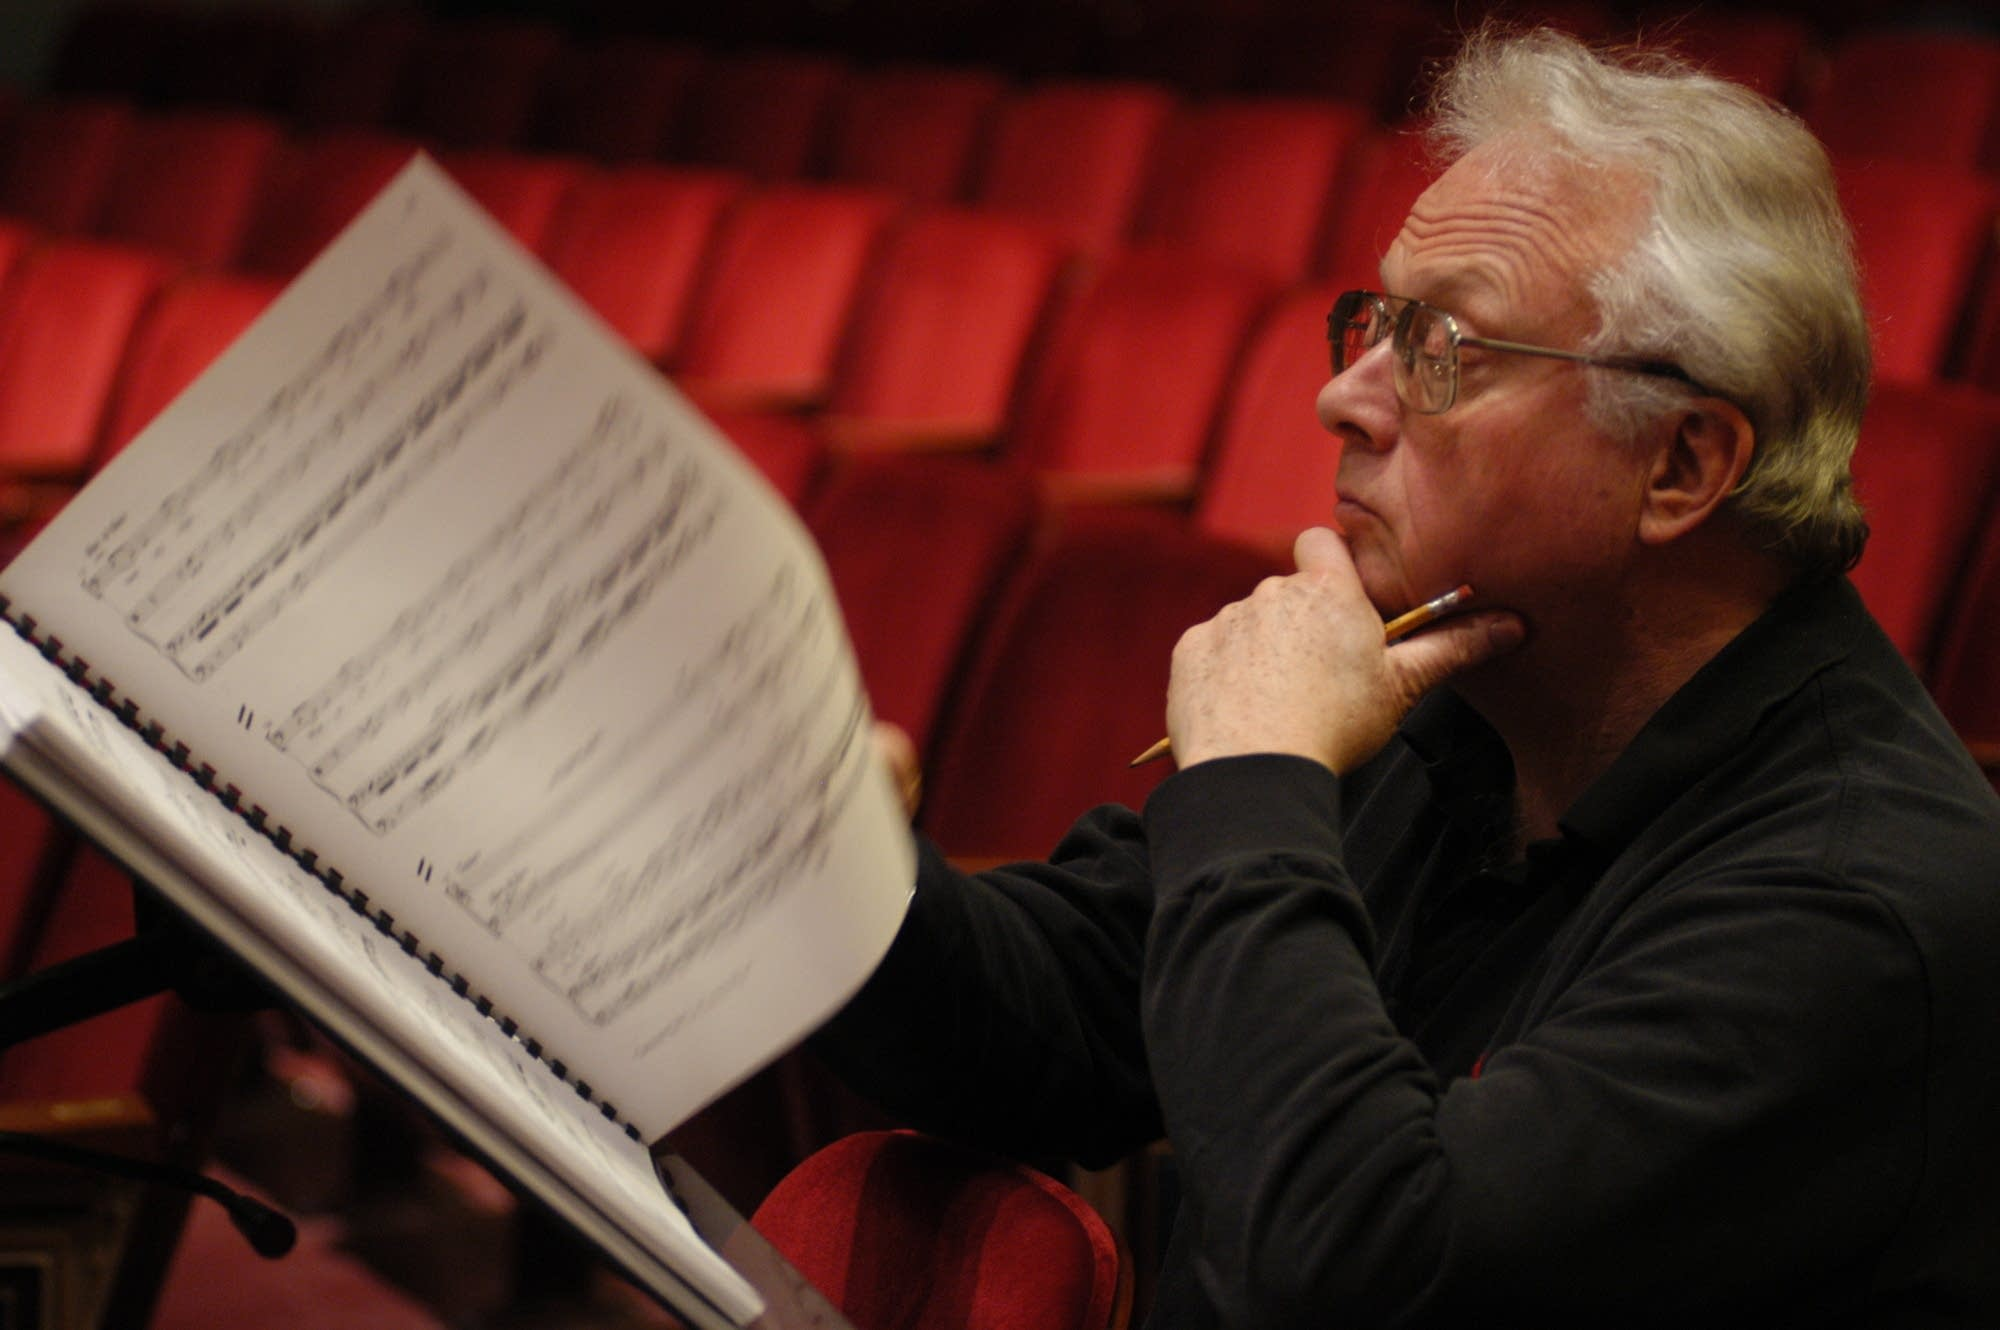 Composer William Bolcom